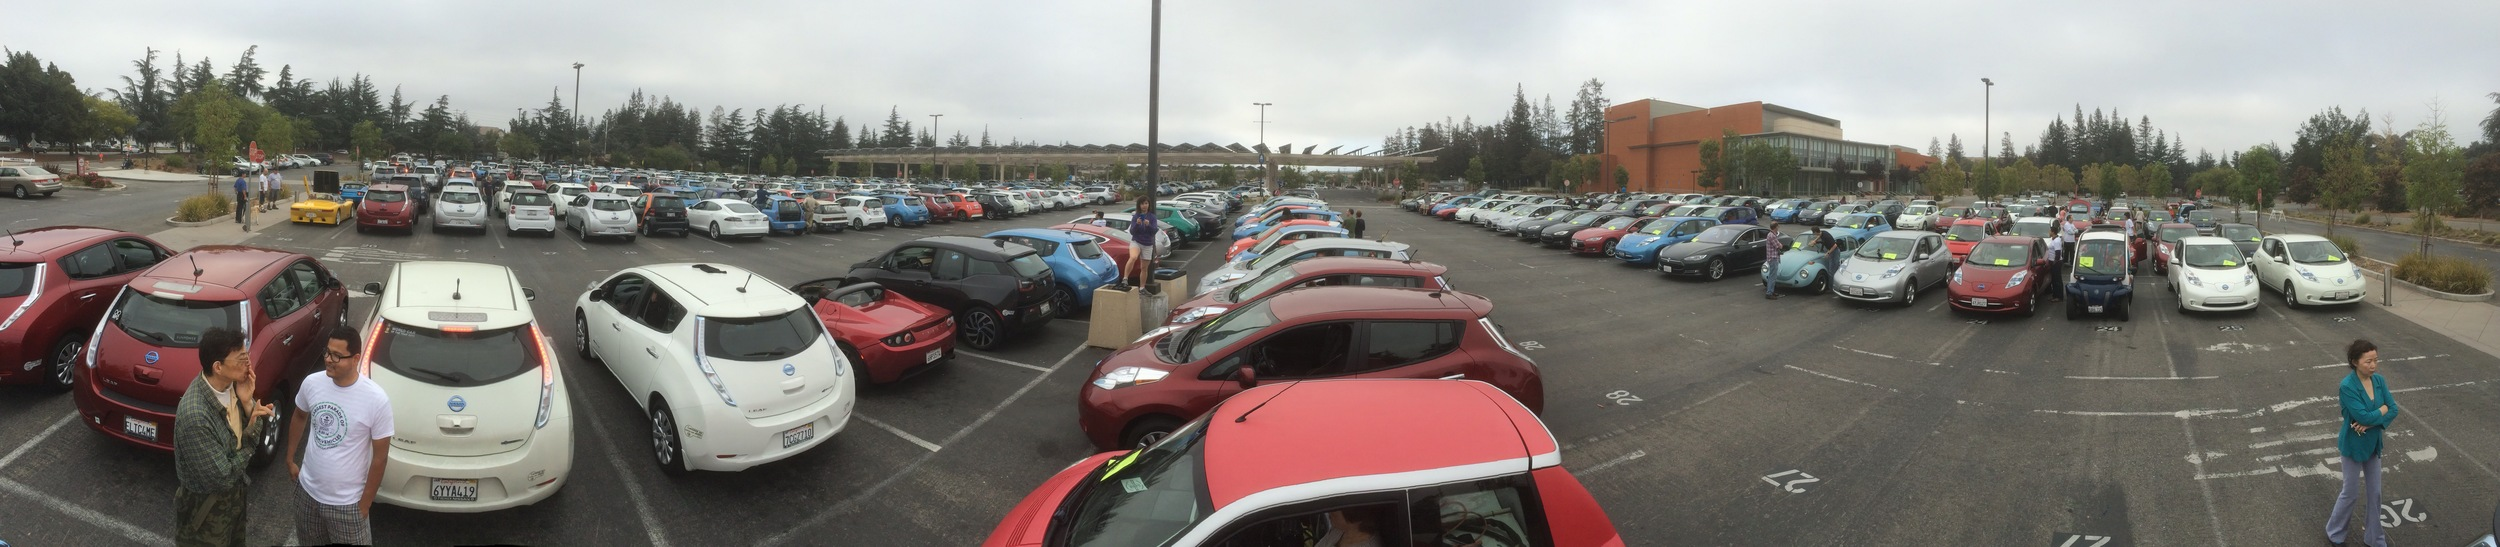 EV drivers patiently waiting their turn in the line-up